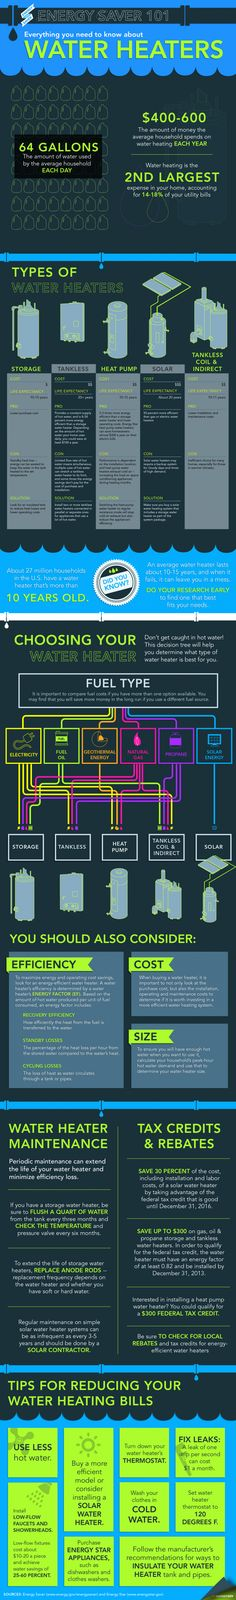 Energy Saver 101 infographic lays out the different types of water heaters on the market and will help you figure out how to select the best model for your home.